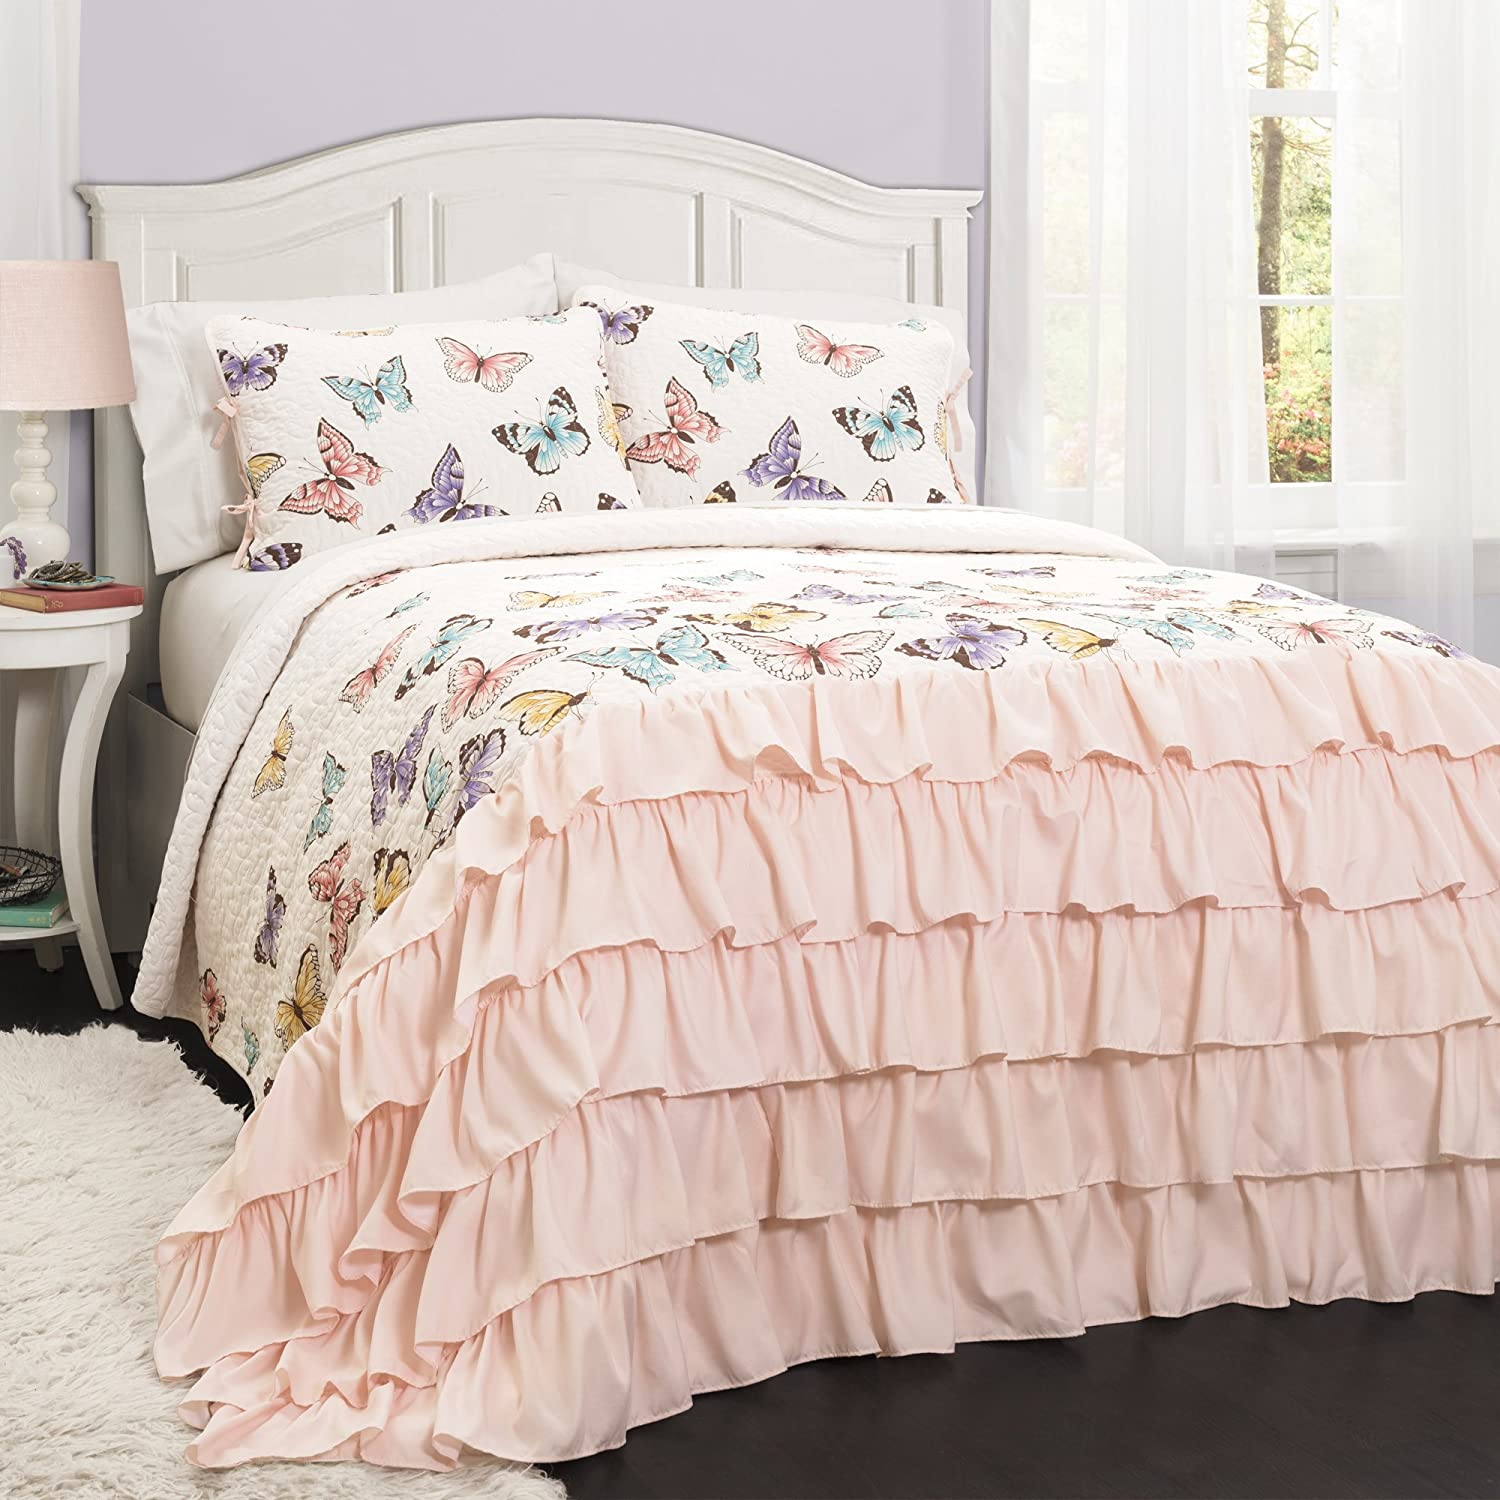 Lush Decor Lush Décor Flutter Butterfly 2 Piece Quilt Set, Twin, 0